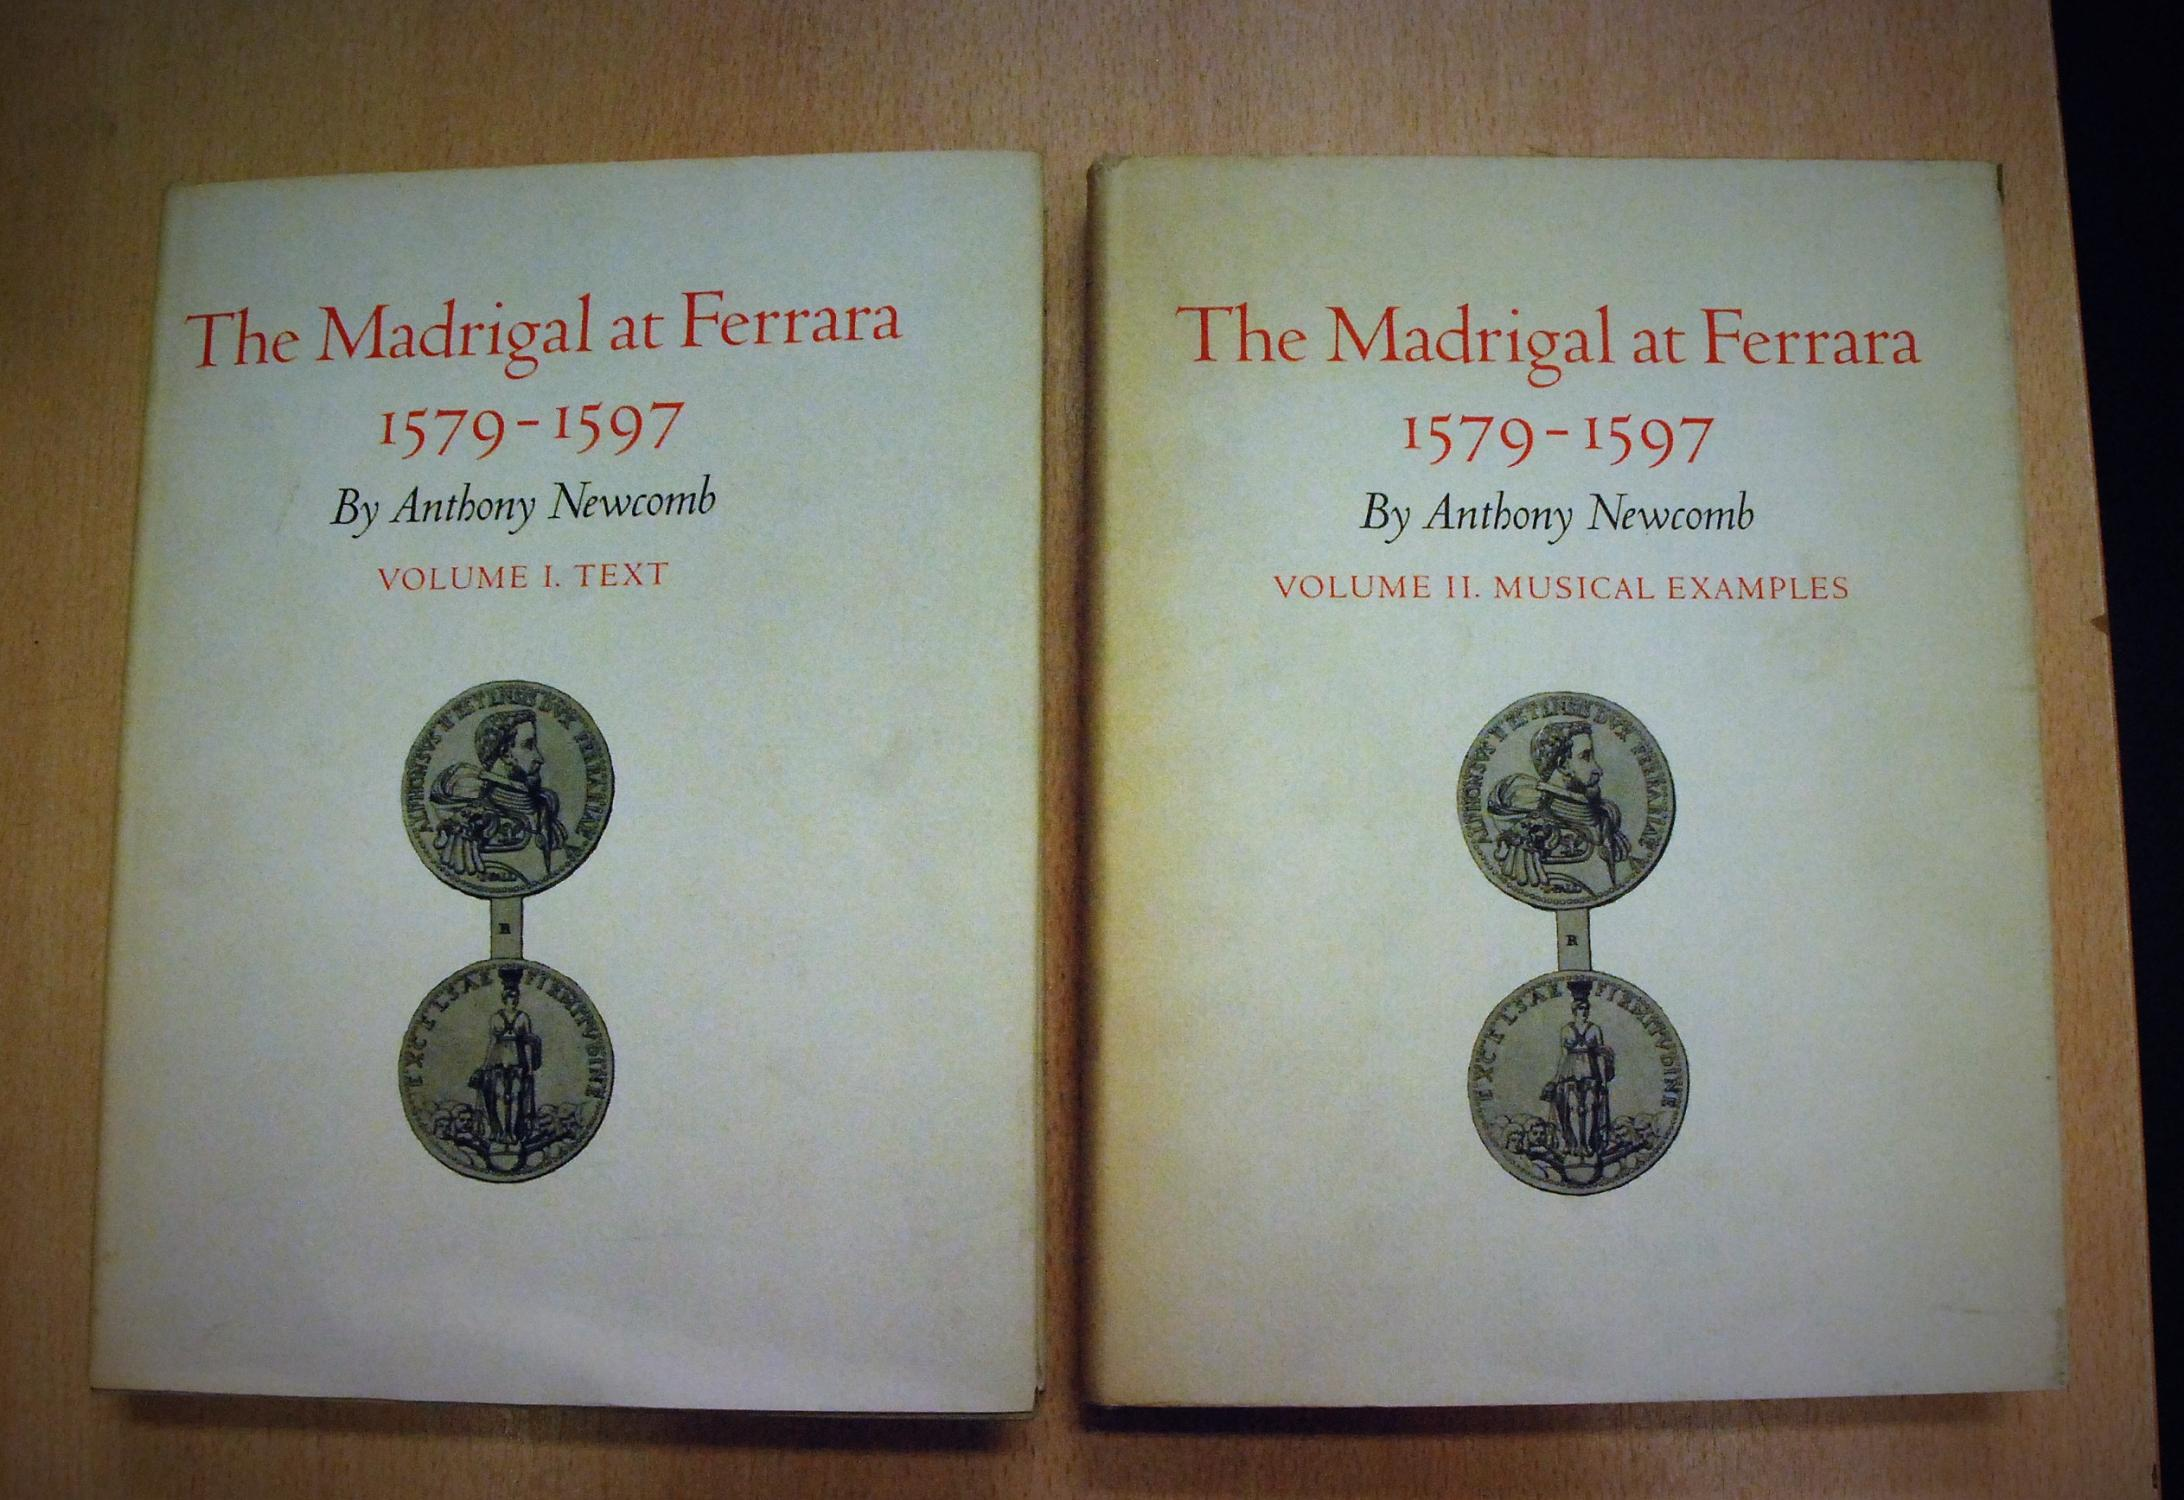 Newcomb, Anthony, The Madrigal at Ferrara: 1579-1597, Princeton University  Press, 1980